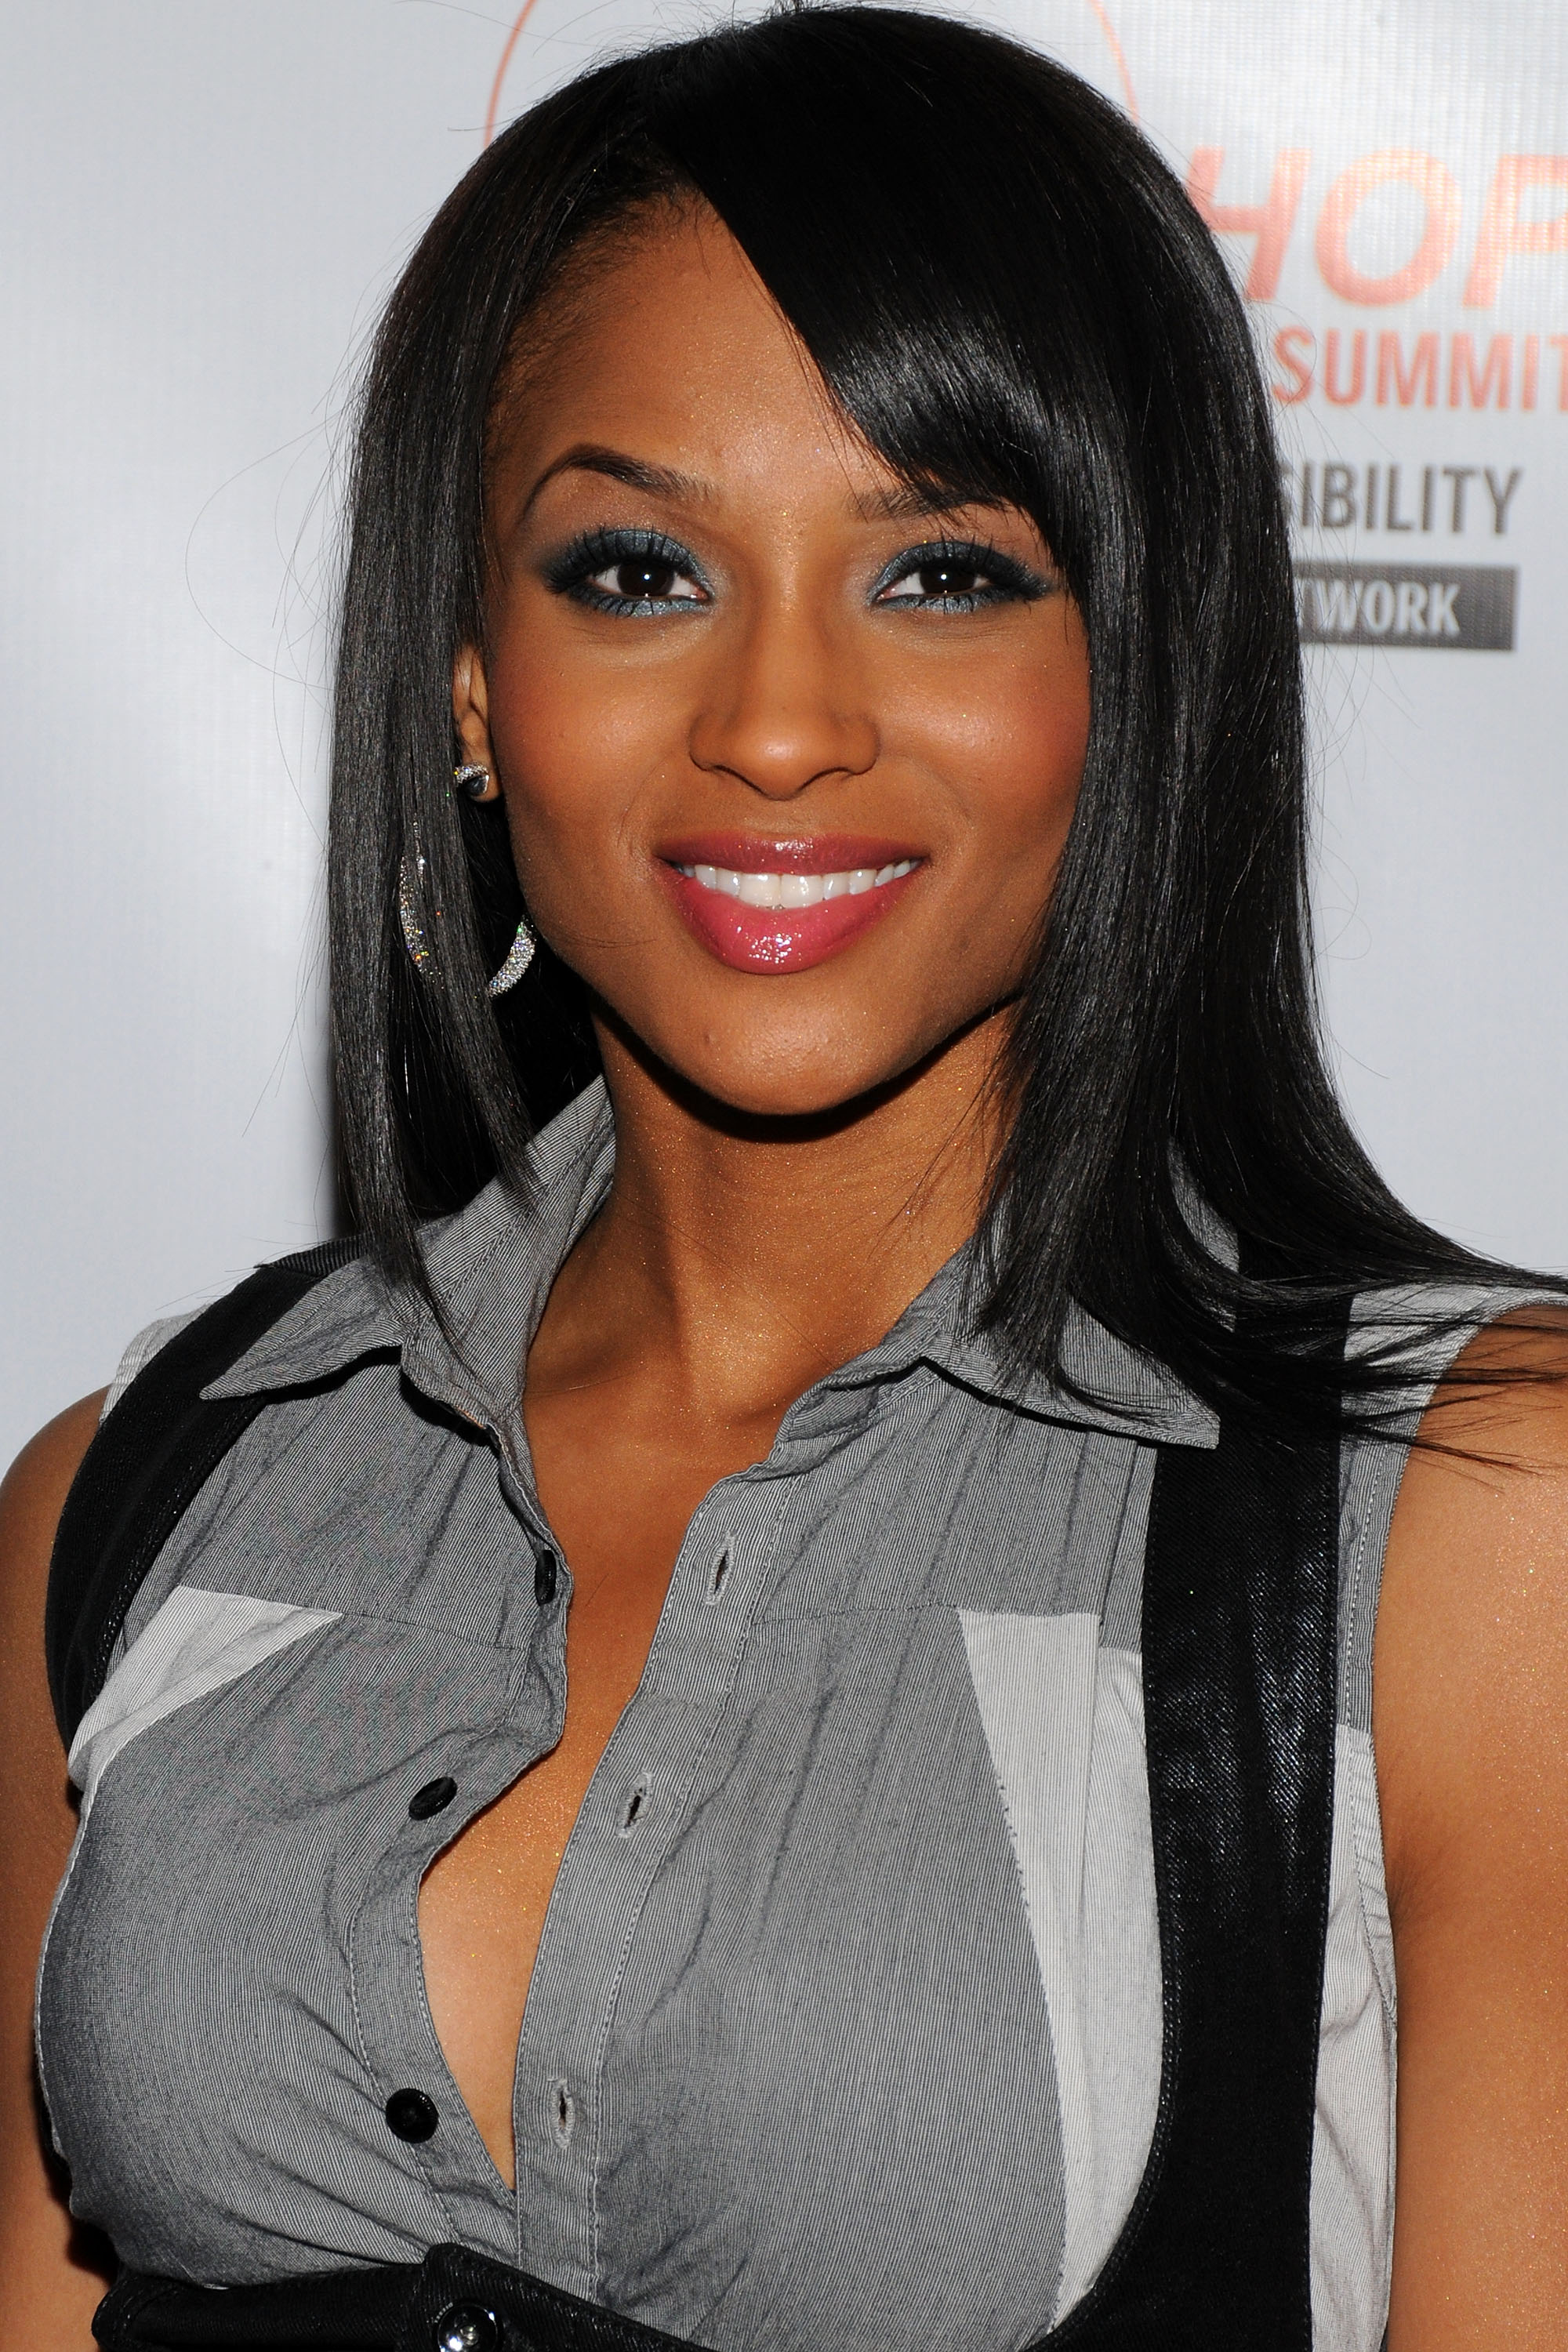 52243_Celebutopia-Ciara-Hip-Hop_Summit_Action_Network70s_Fifth_Annual_Action_Awards-05_122_676lo.jpg